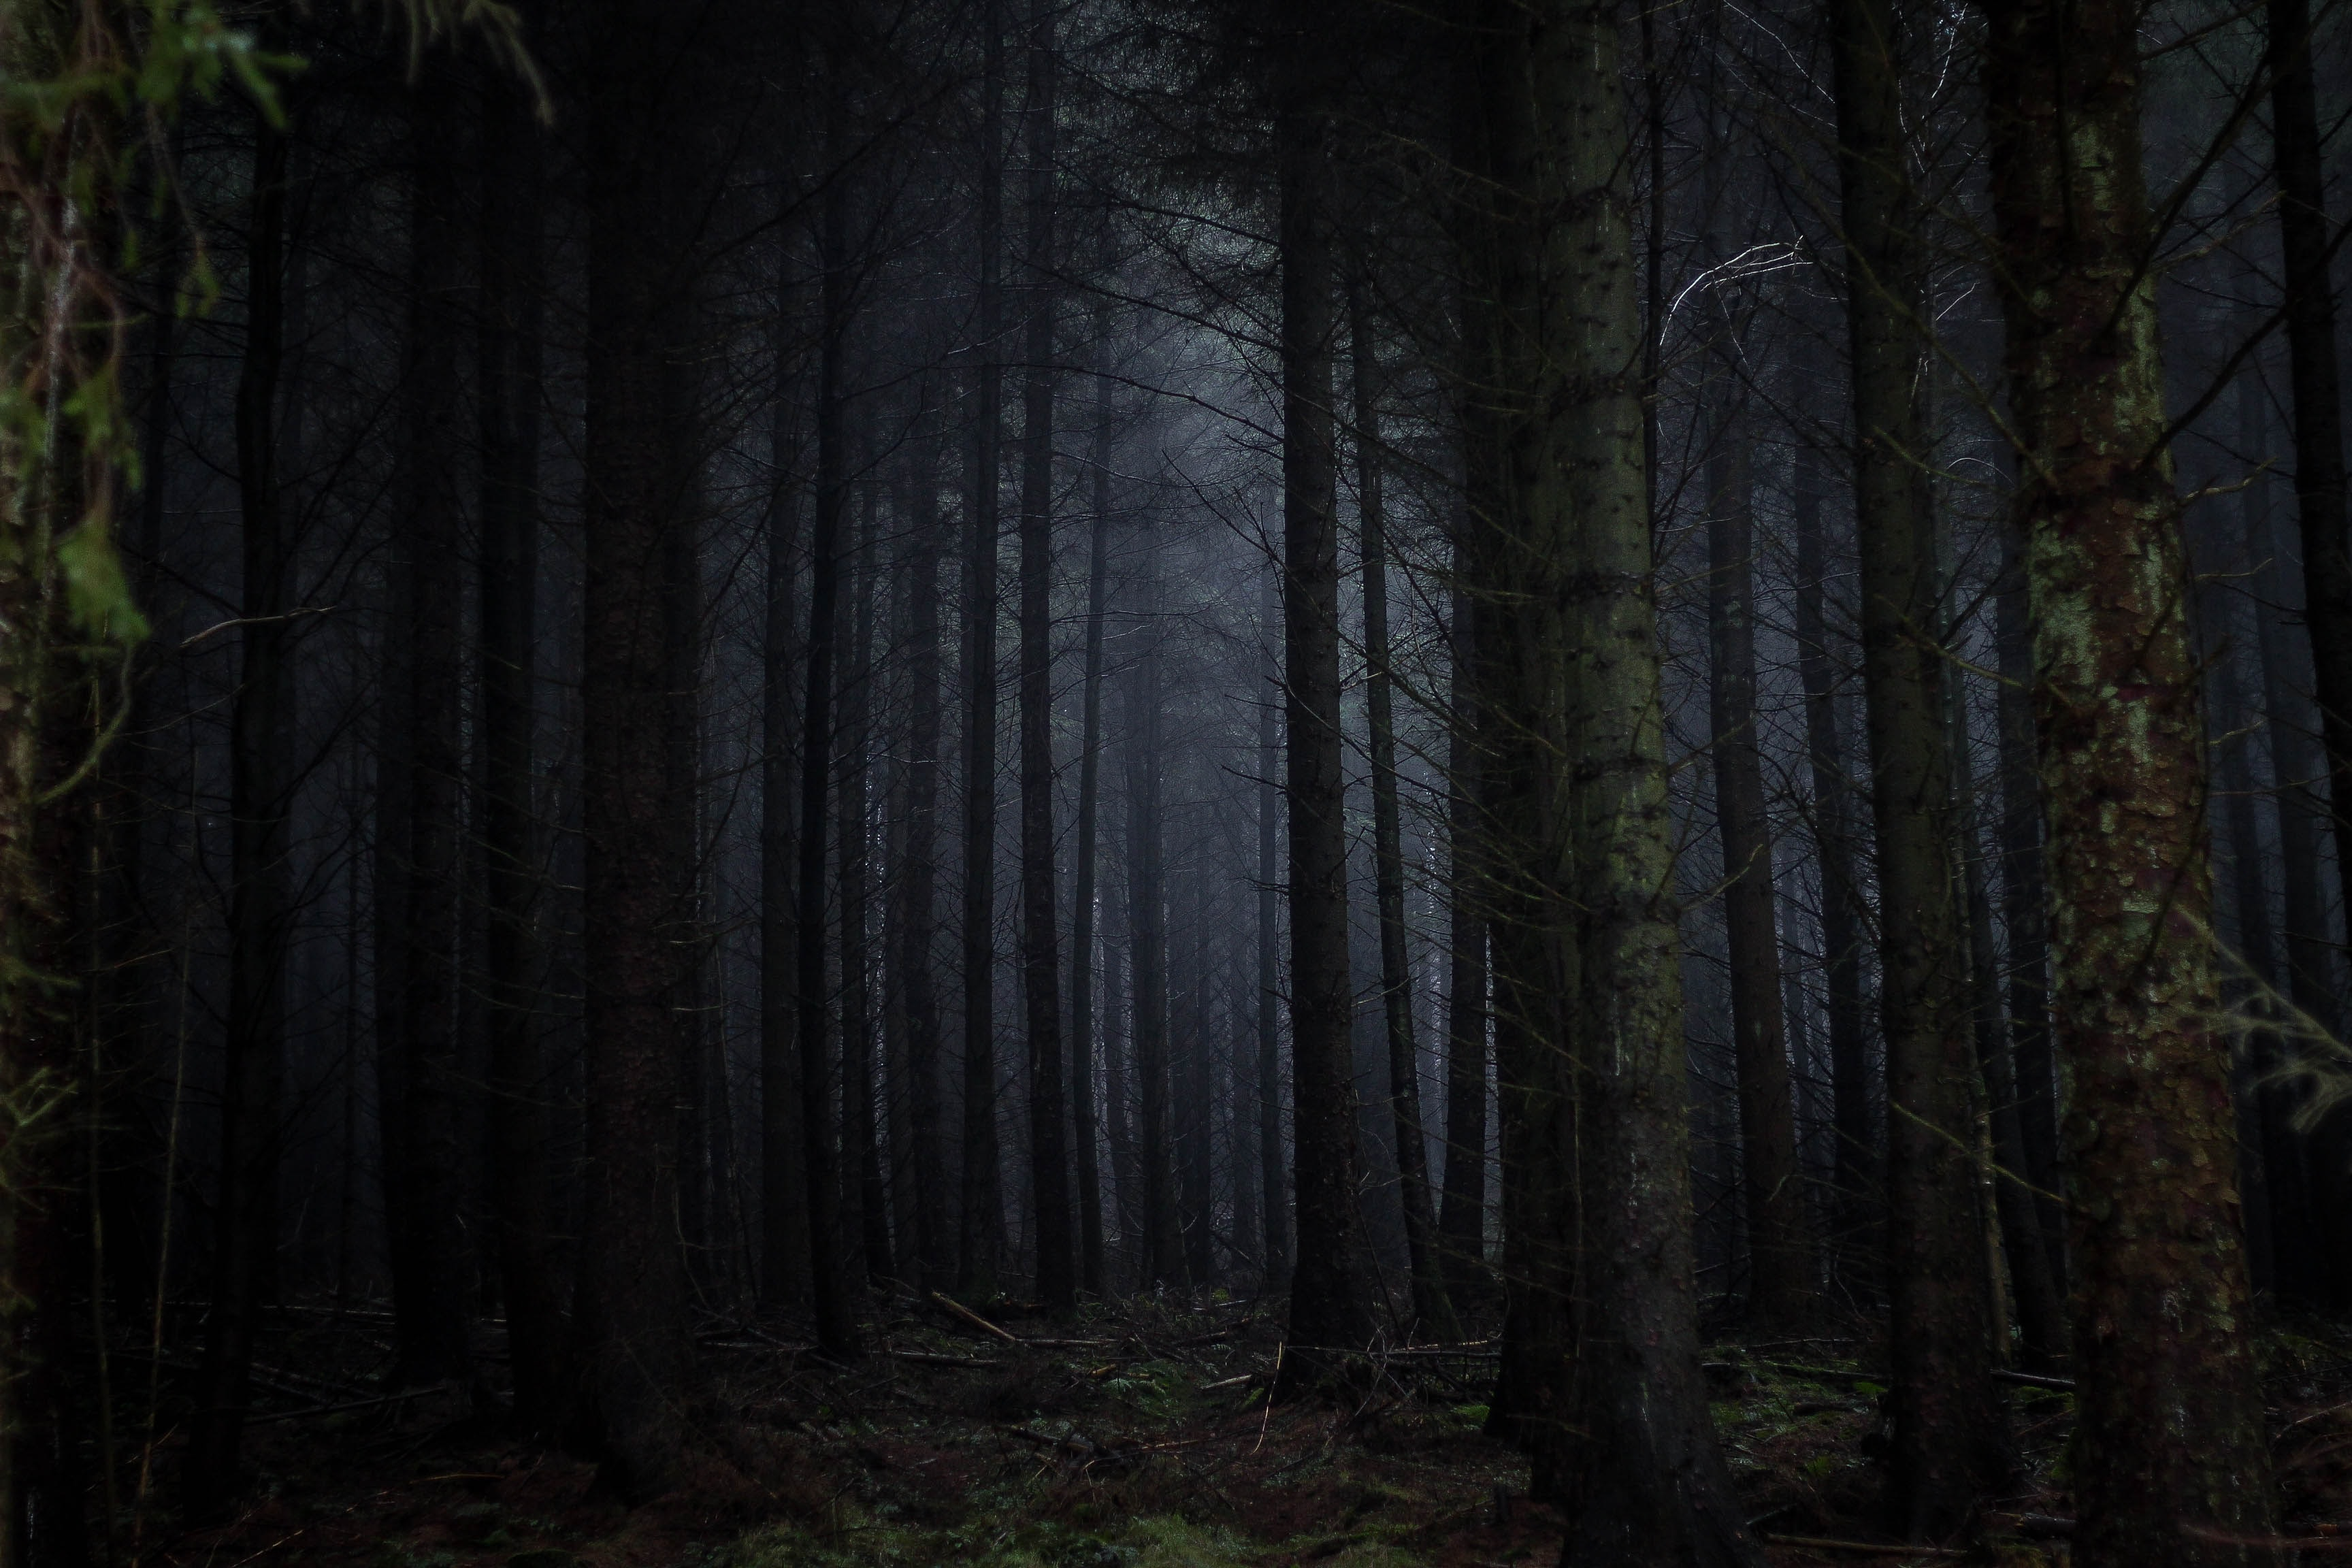 Dark Forest Pictures Hd Download Free Images On Unsplash